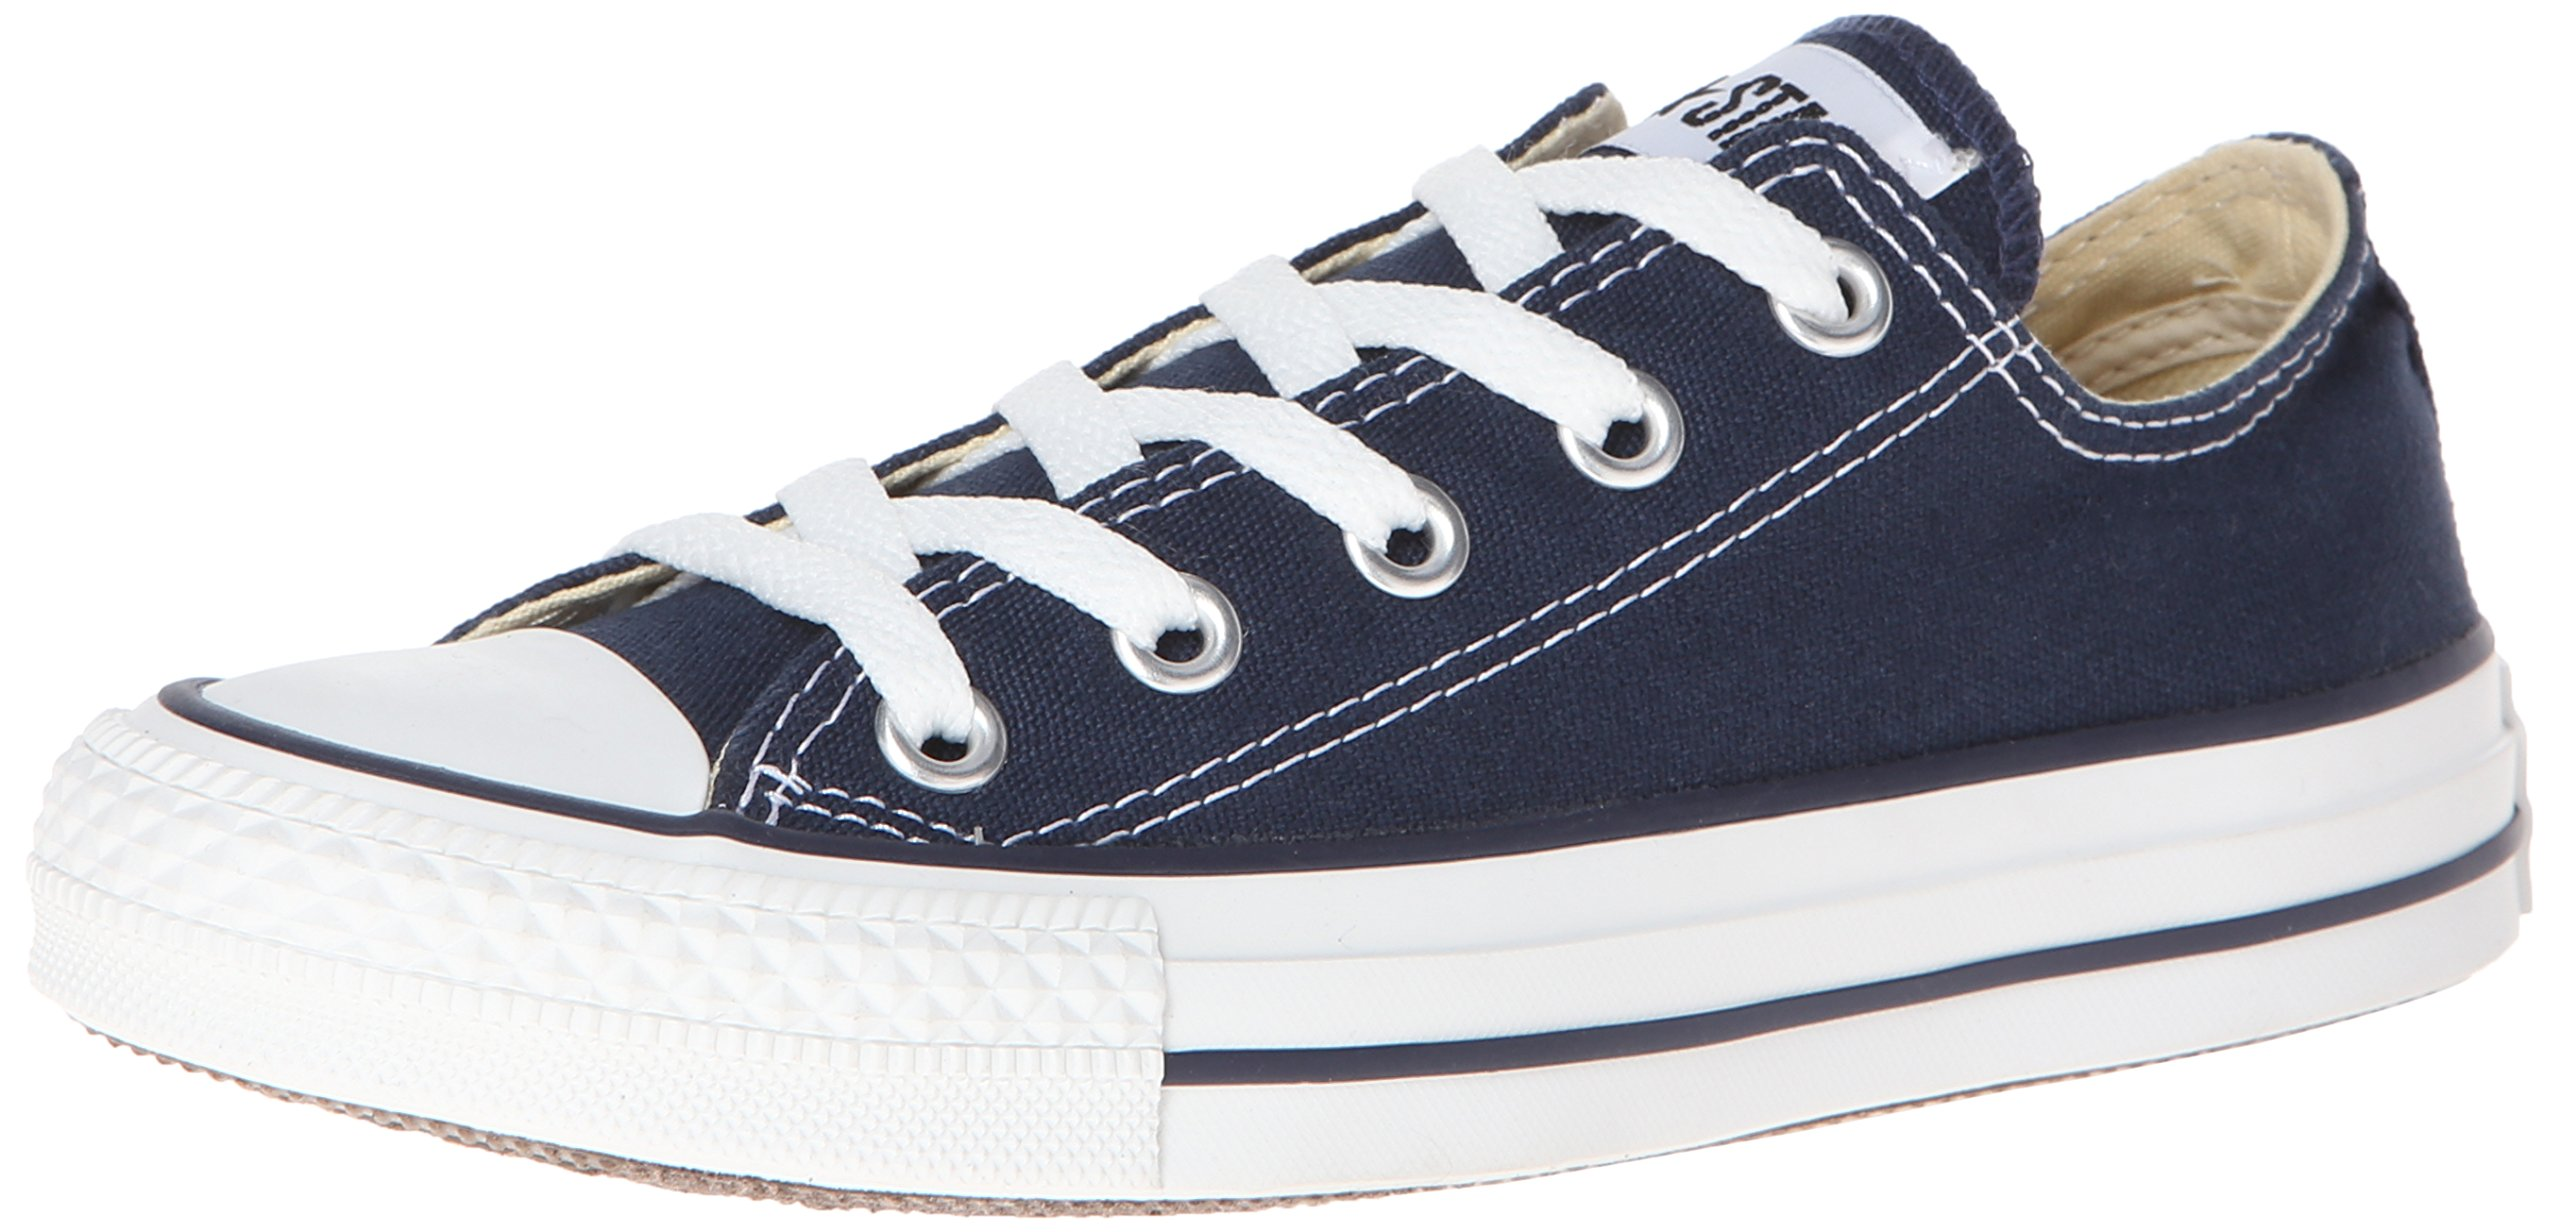 Converse Unisex Chuck Taylor All Star Low Top Navy Sneakers - 11 B(M) US Women / 9 D(M) US Men